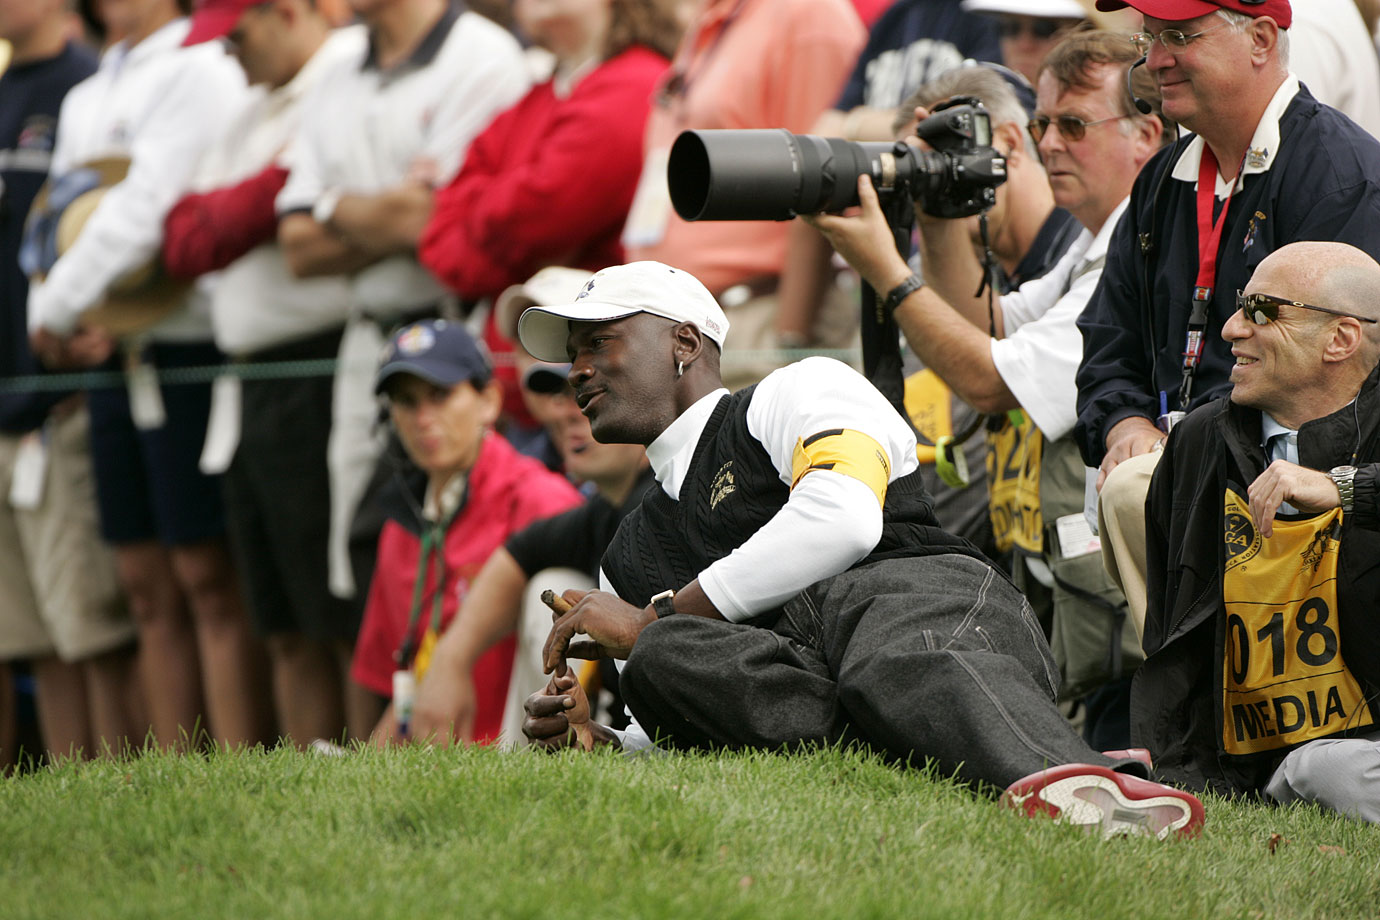 Michael Jordan catches some action at the 35th Ryder Cup in September 2004 at the Oakland Hills Country Club in Bloomfield Township, Mich. An avid golfer and fan of the game, Jordan has attended every Ryder Cup since 1995.